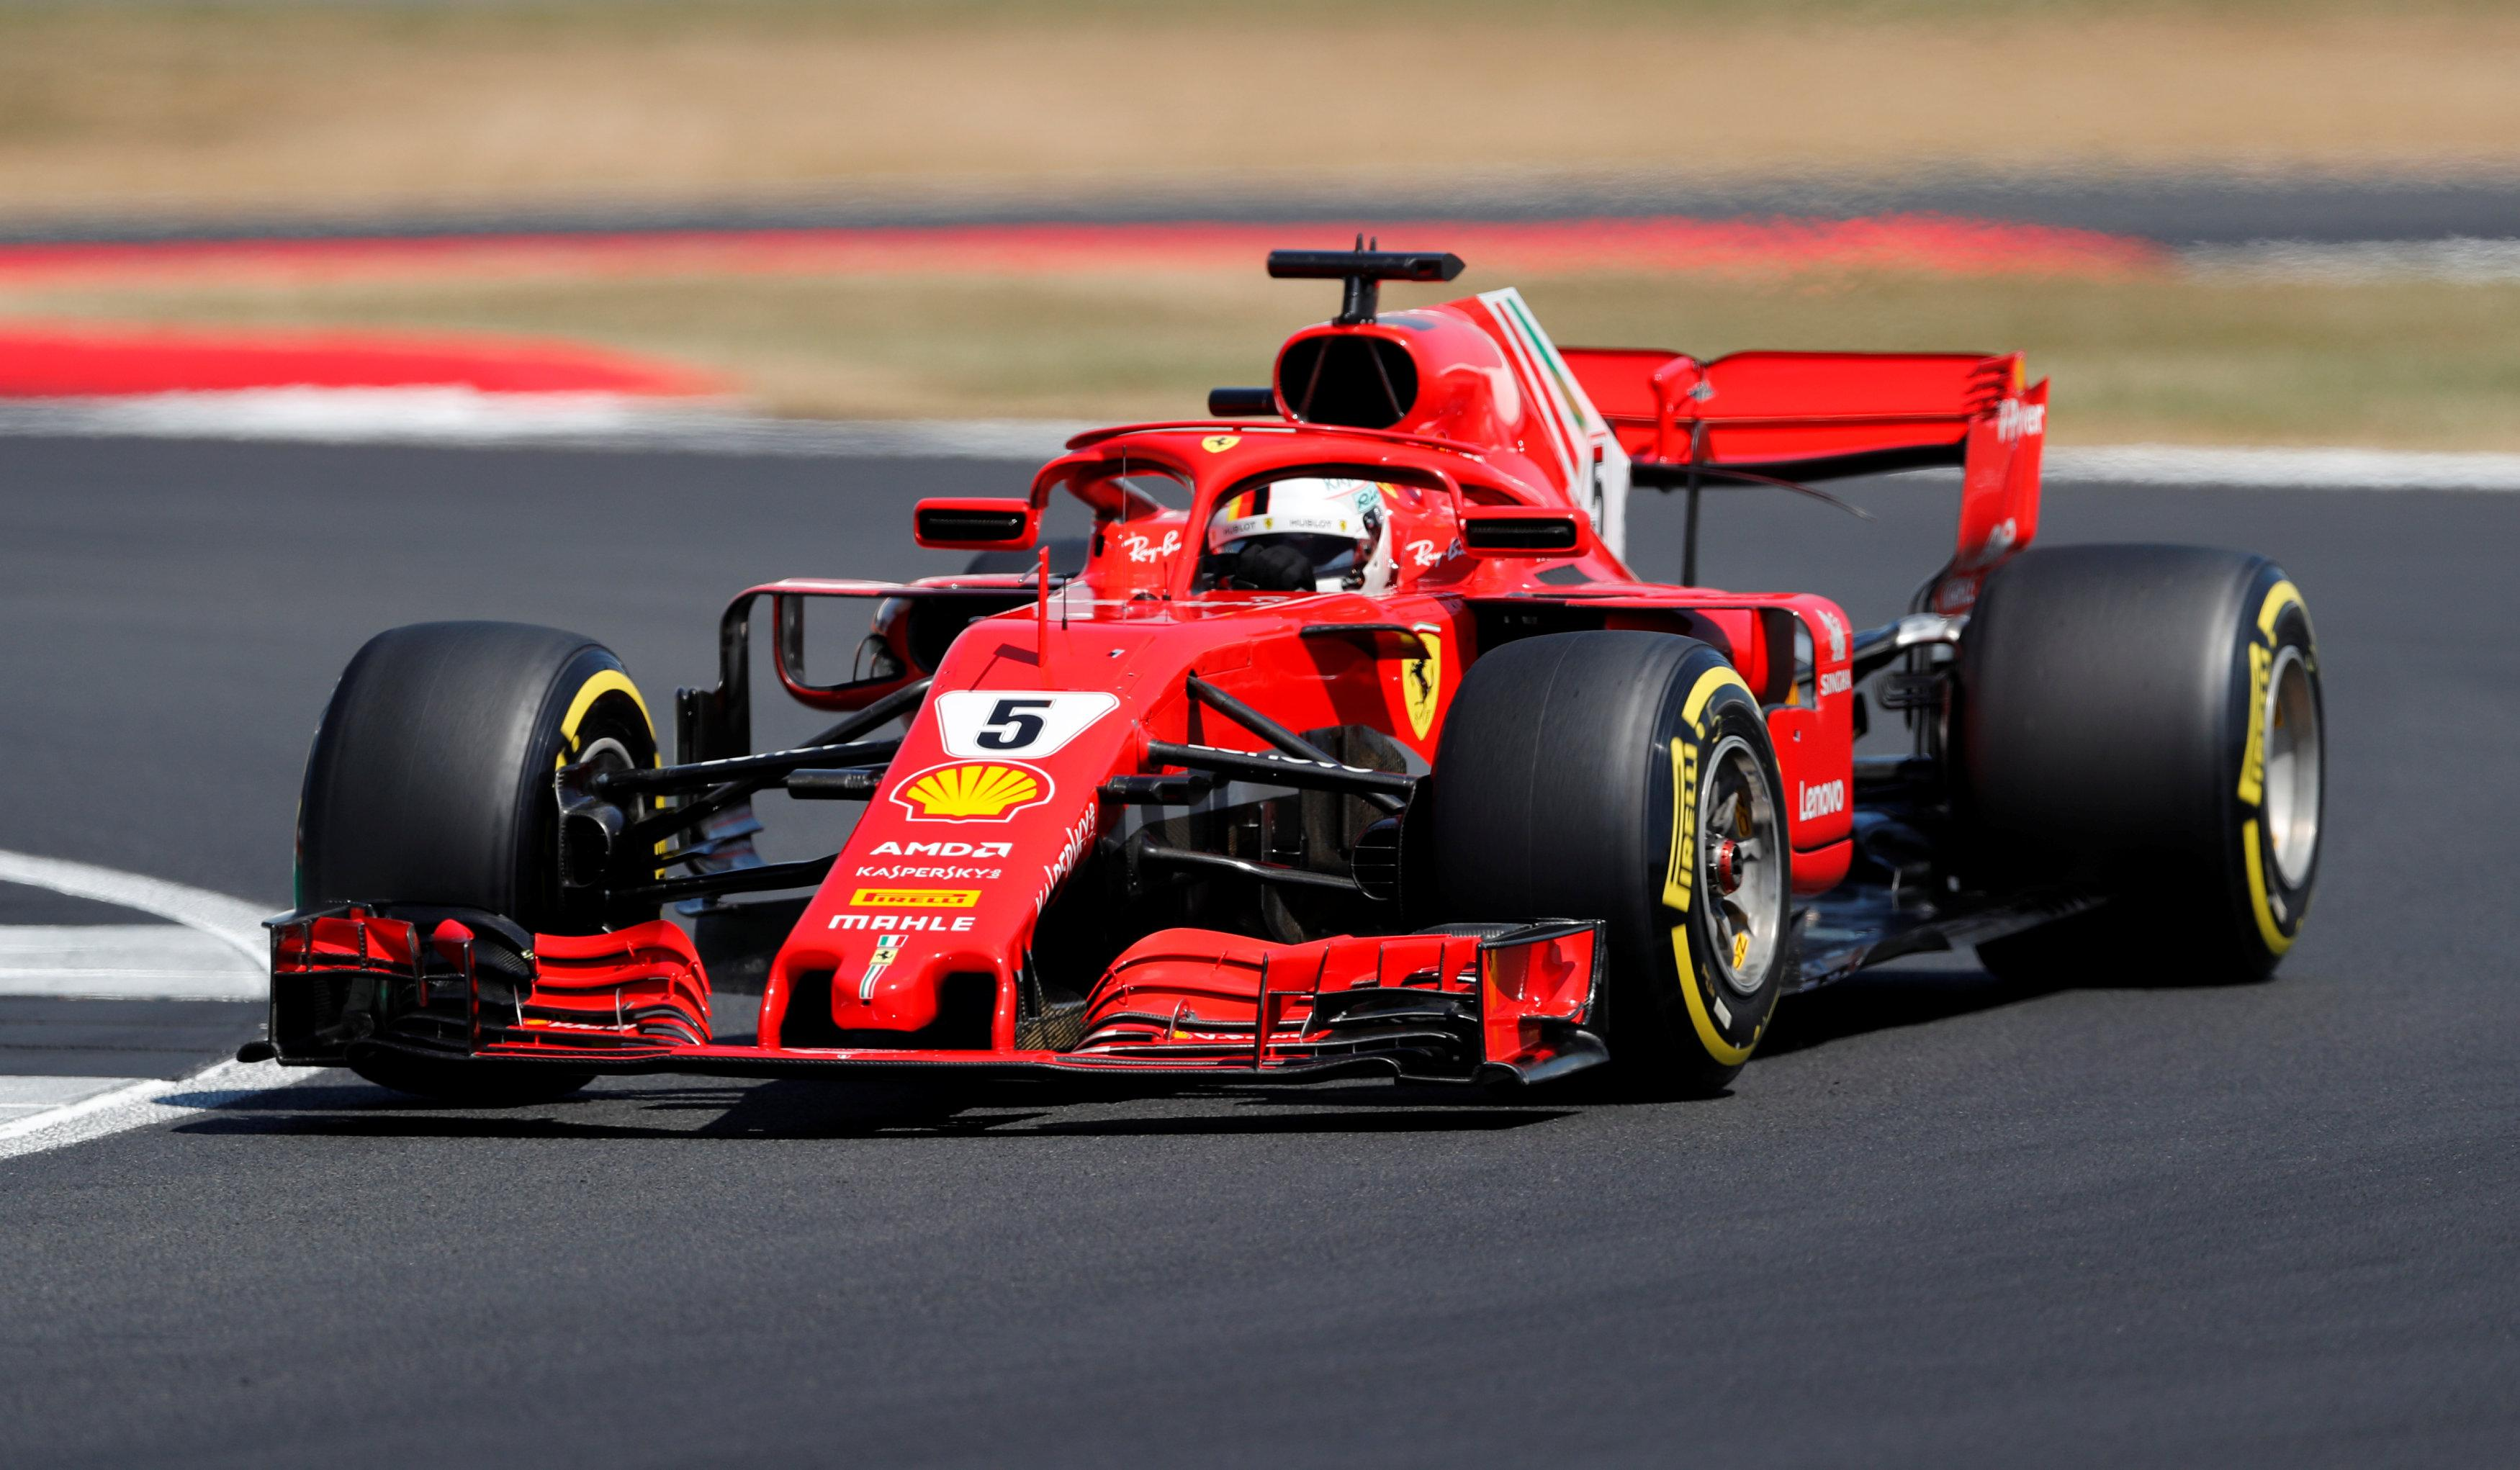 Sebastian Vettel leads the world title race by a point but will start second on the grid